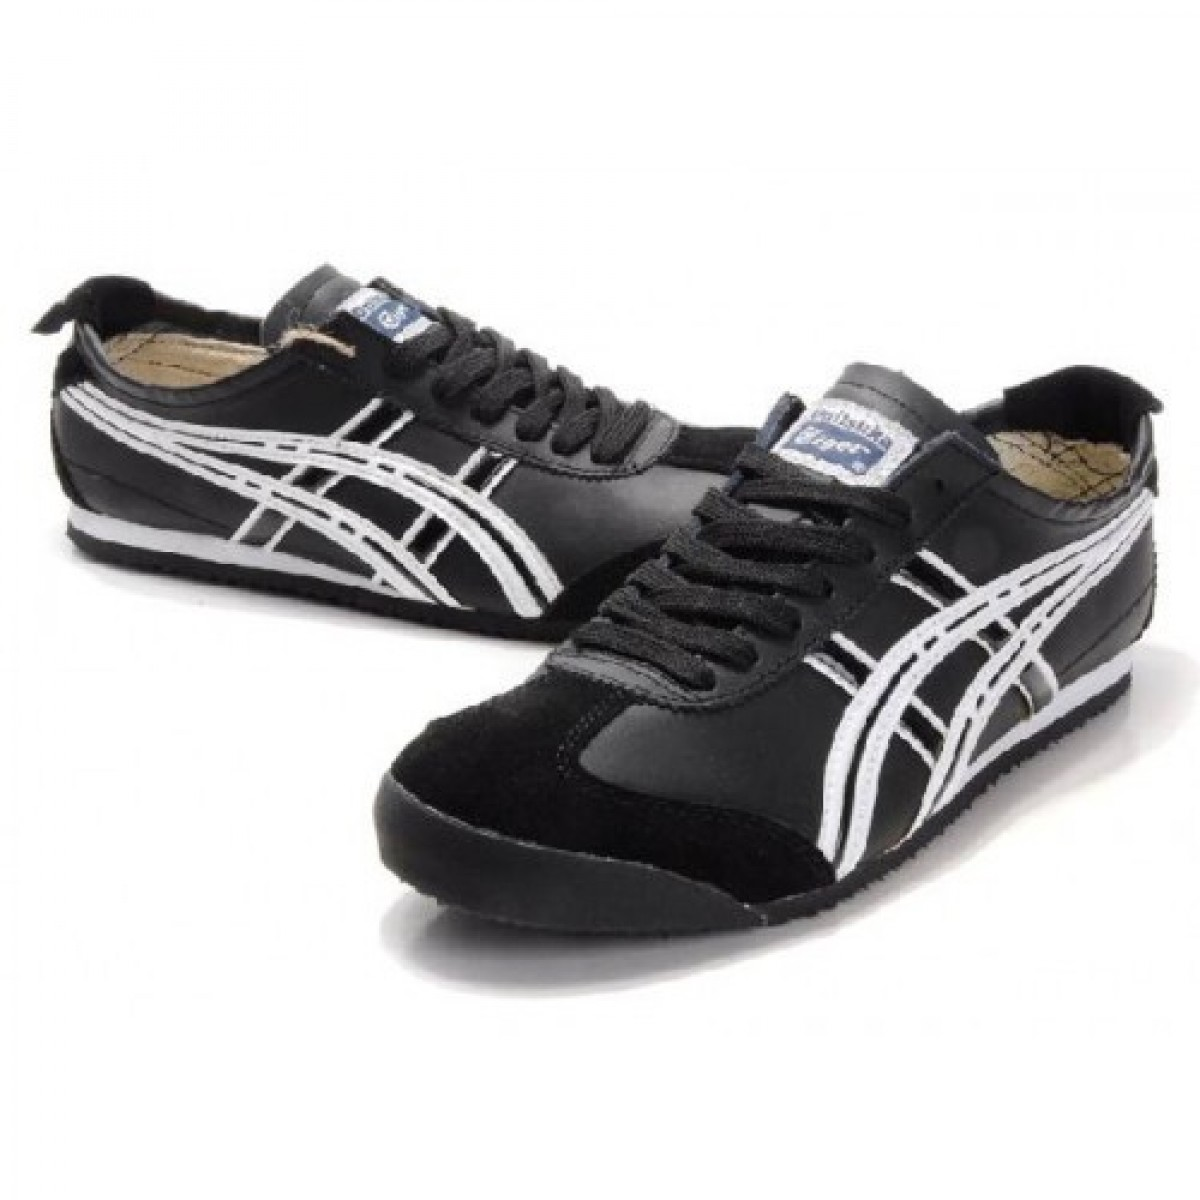 XM5529 Soldes Asics Onitsuka Tiger Mexico 66 Chaussures Hommes Noir Blanc 75330425 Pas Cher